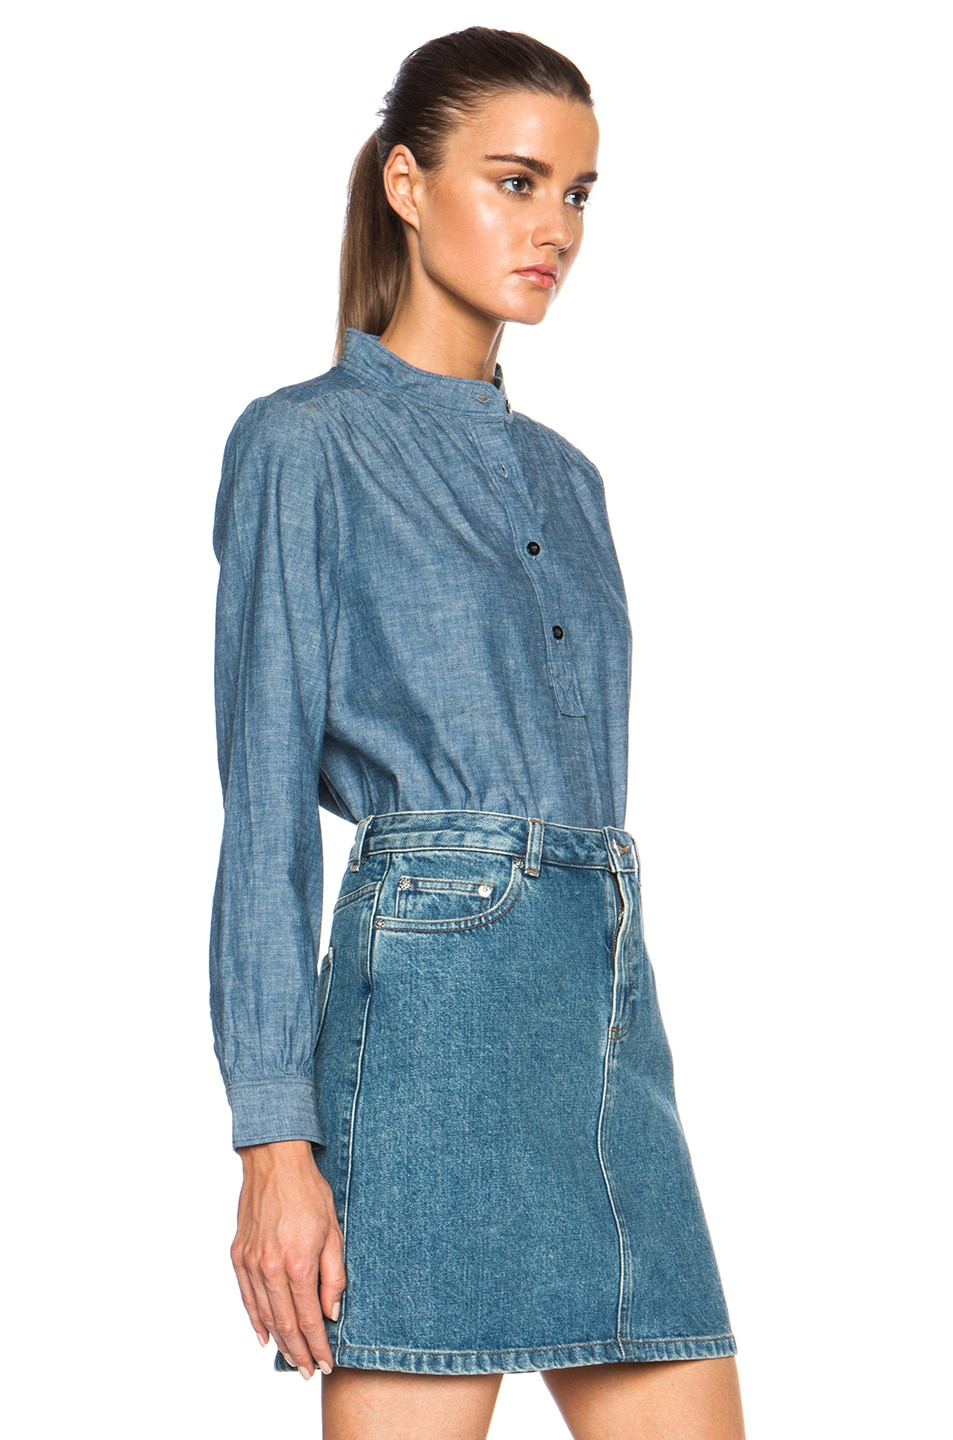 Image 3 of A.P.C. Sally Chambray Blouse in Indigo Delave